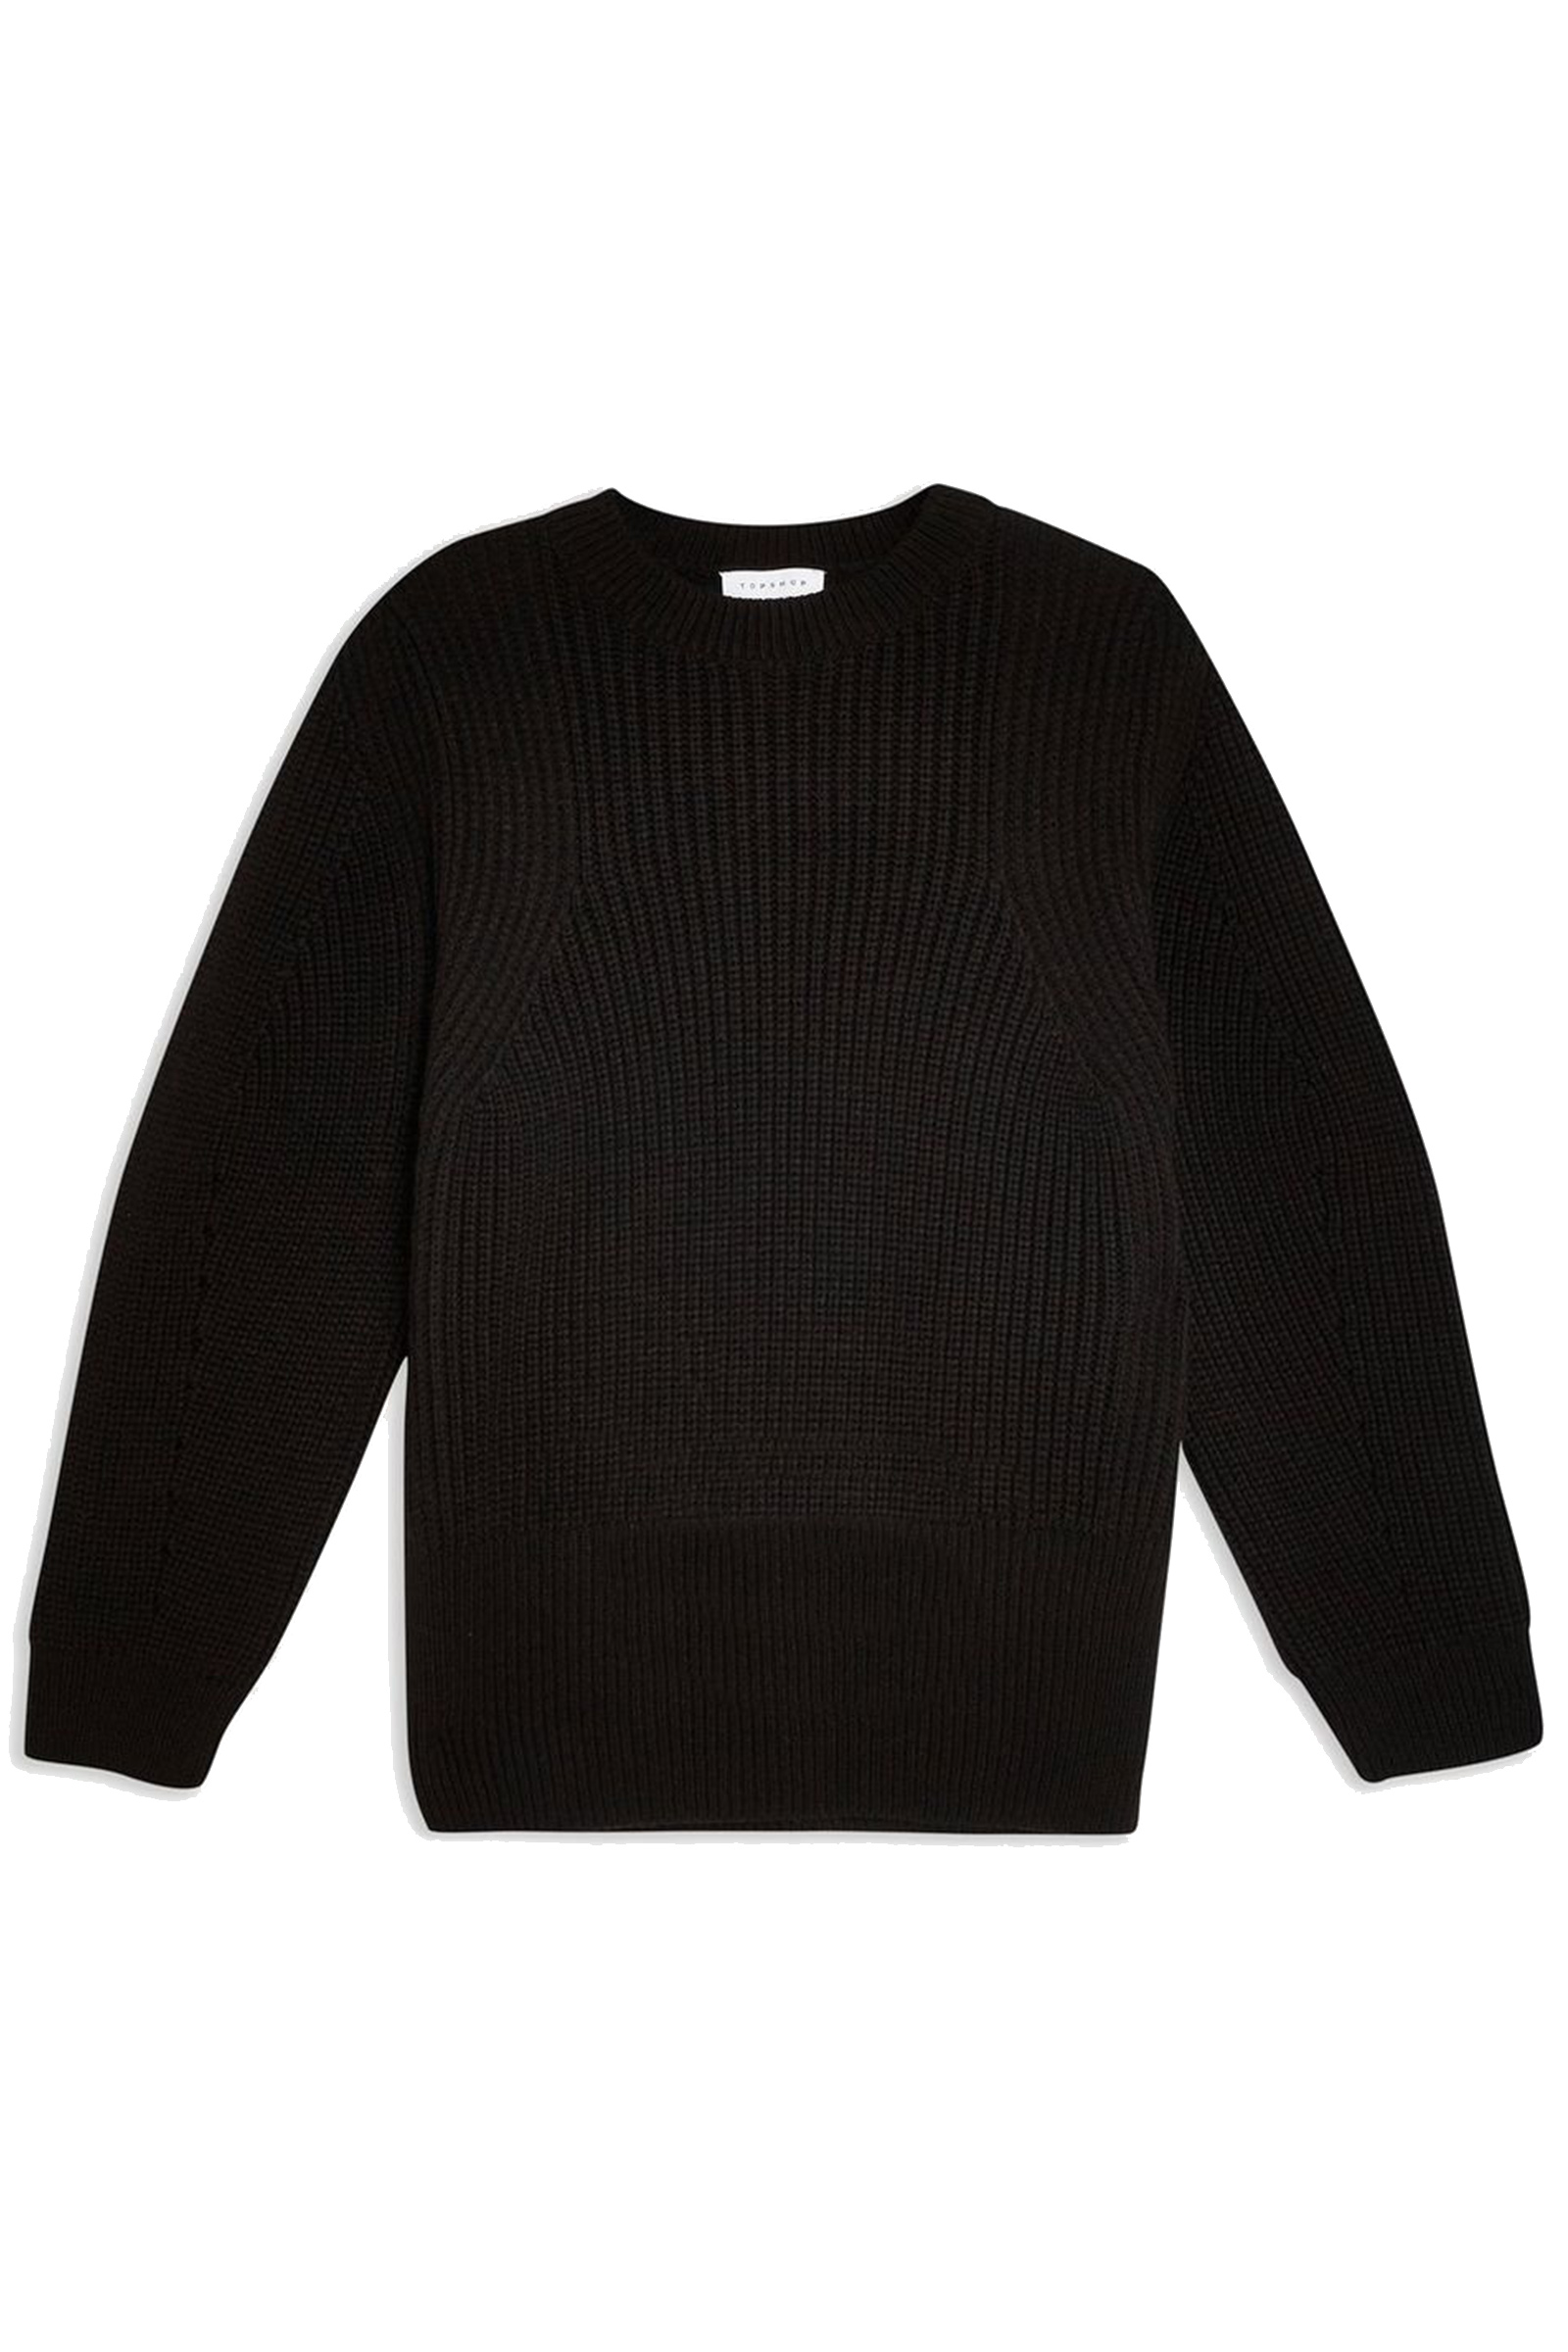 Click to Buy Topshop Sweater